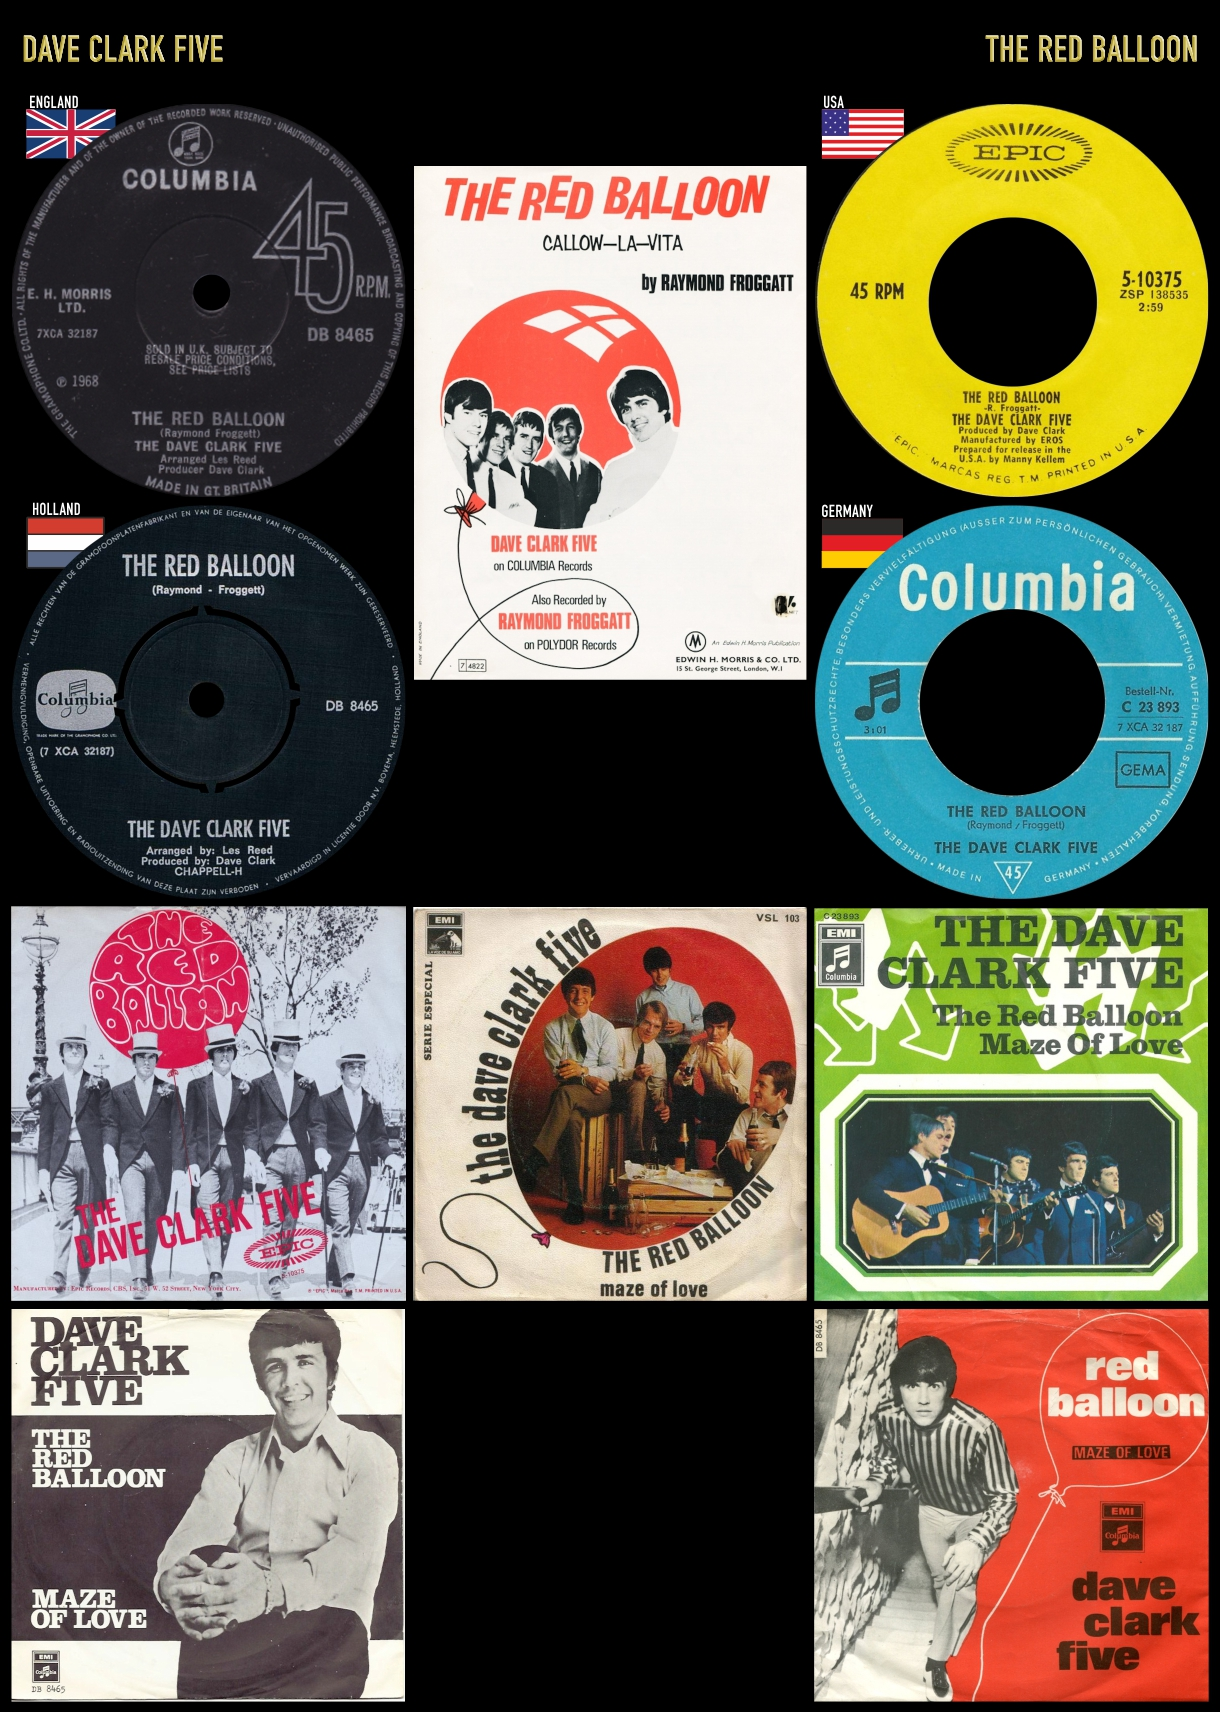 680918_Dave Clark Five_Red Balloon